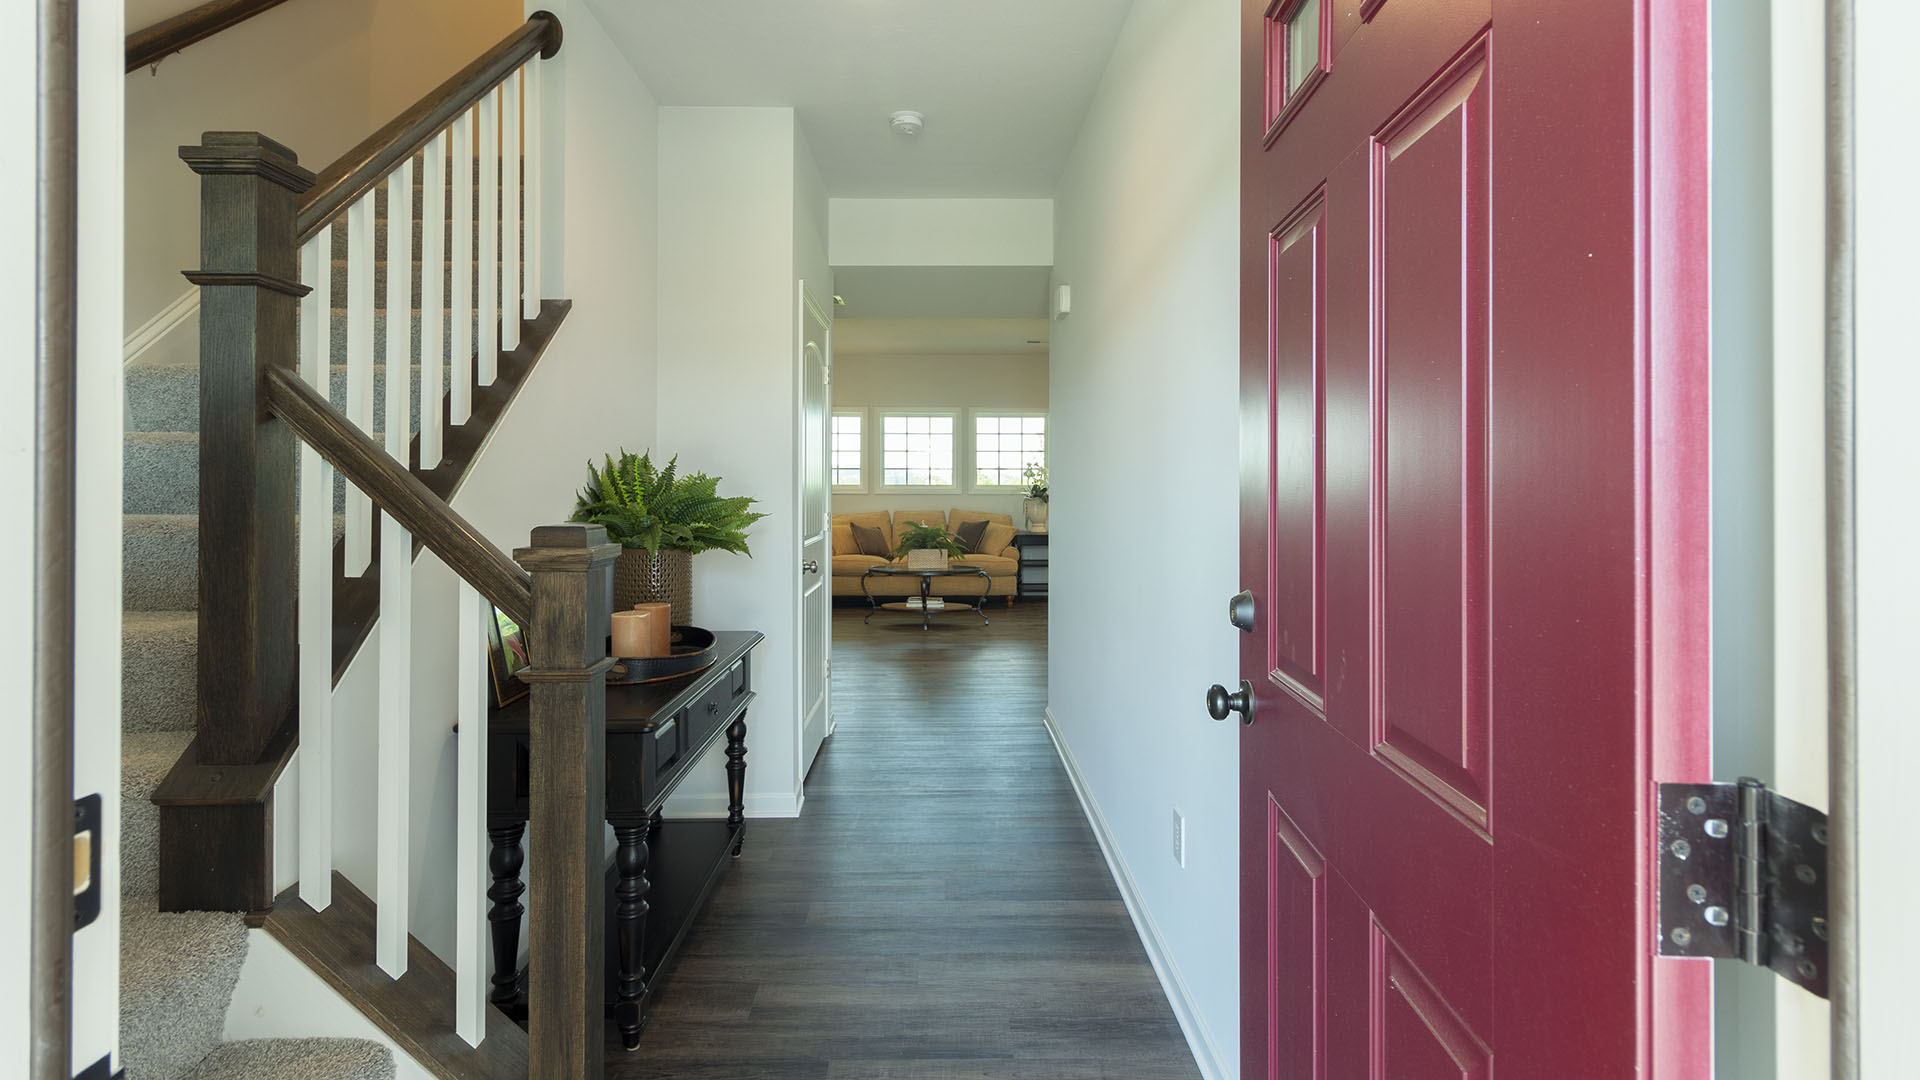 Decorated Model Open by Appointment Only at New Gettysburg Community